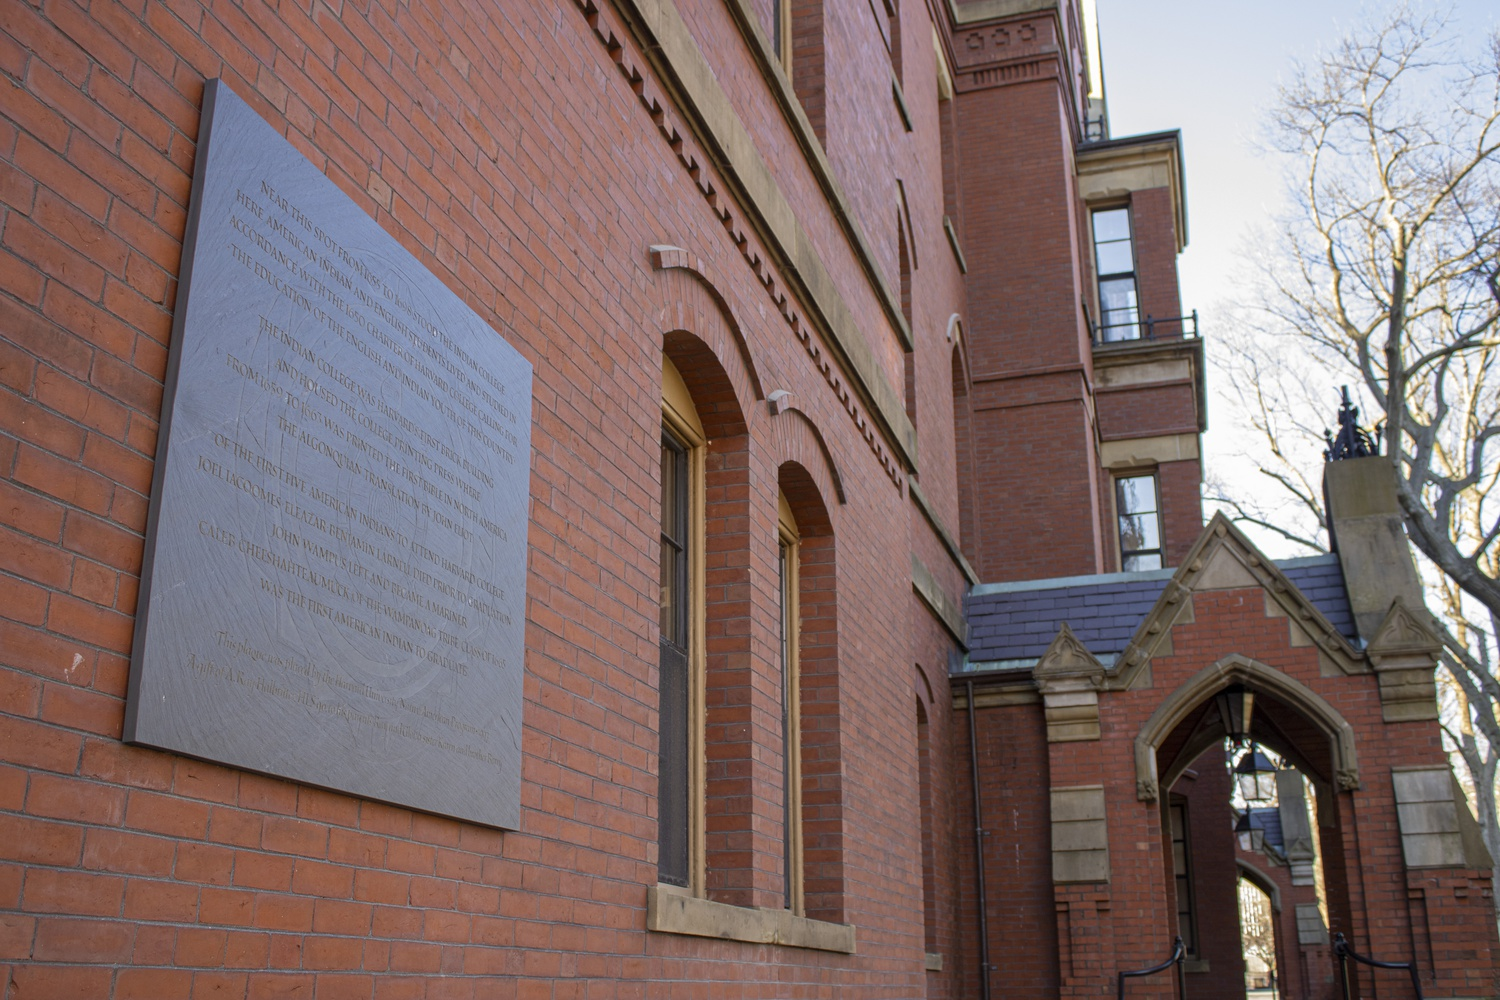 A plaque on Matthews Hall remembers the Harvard Indian College, which was established to educate Native American students.